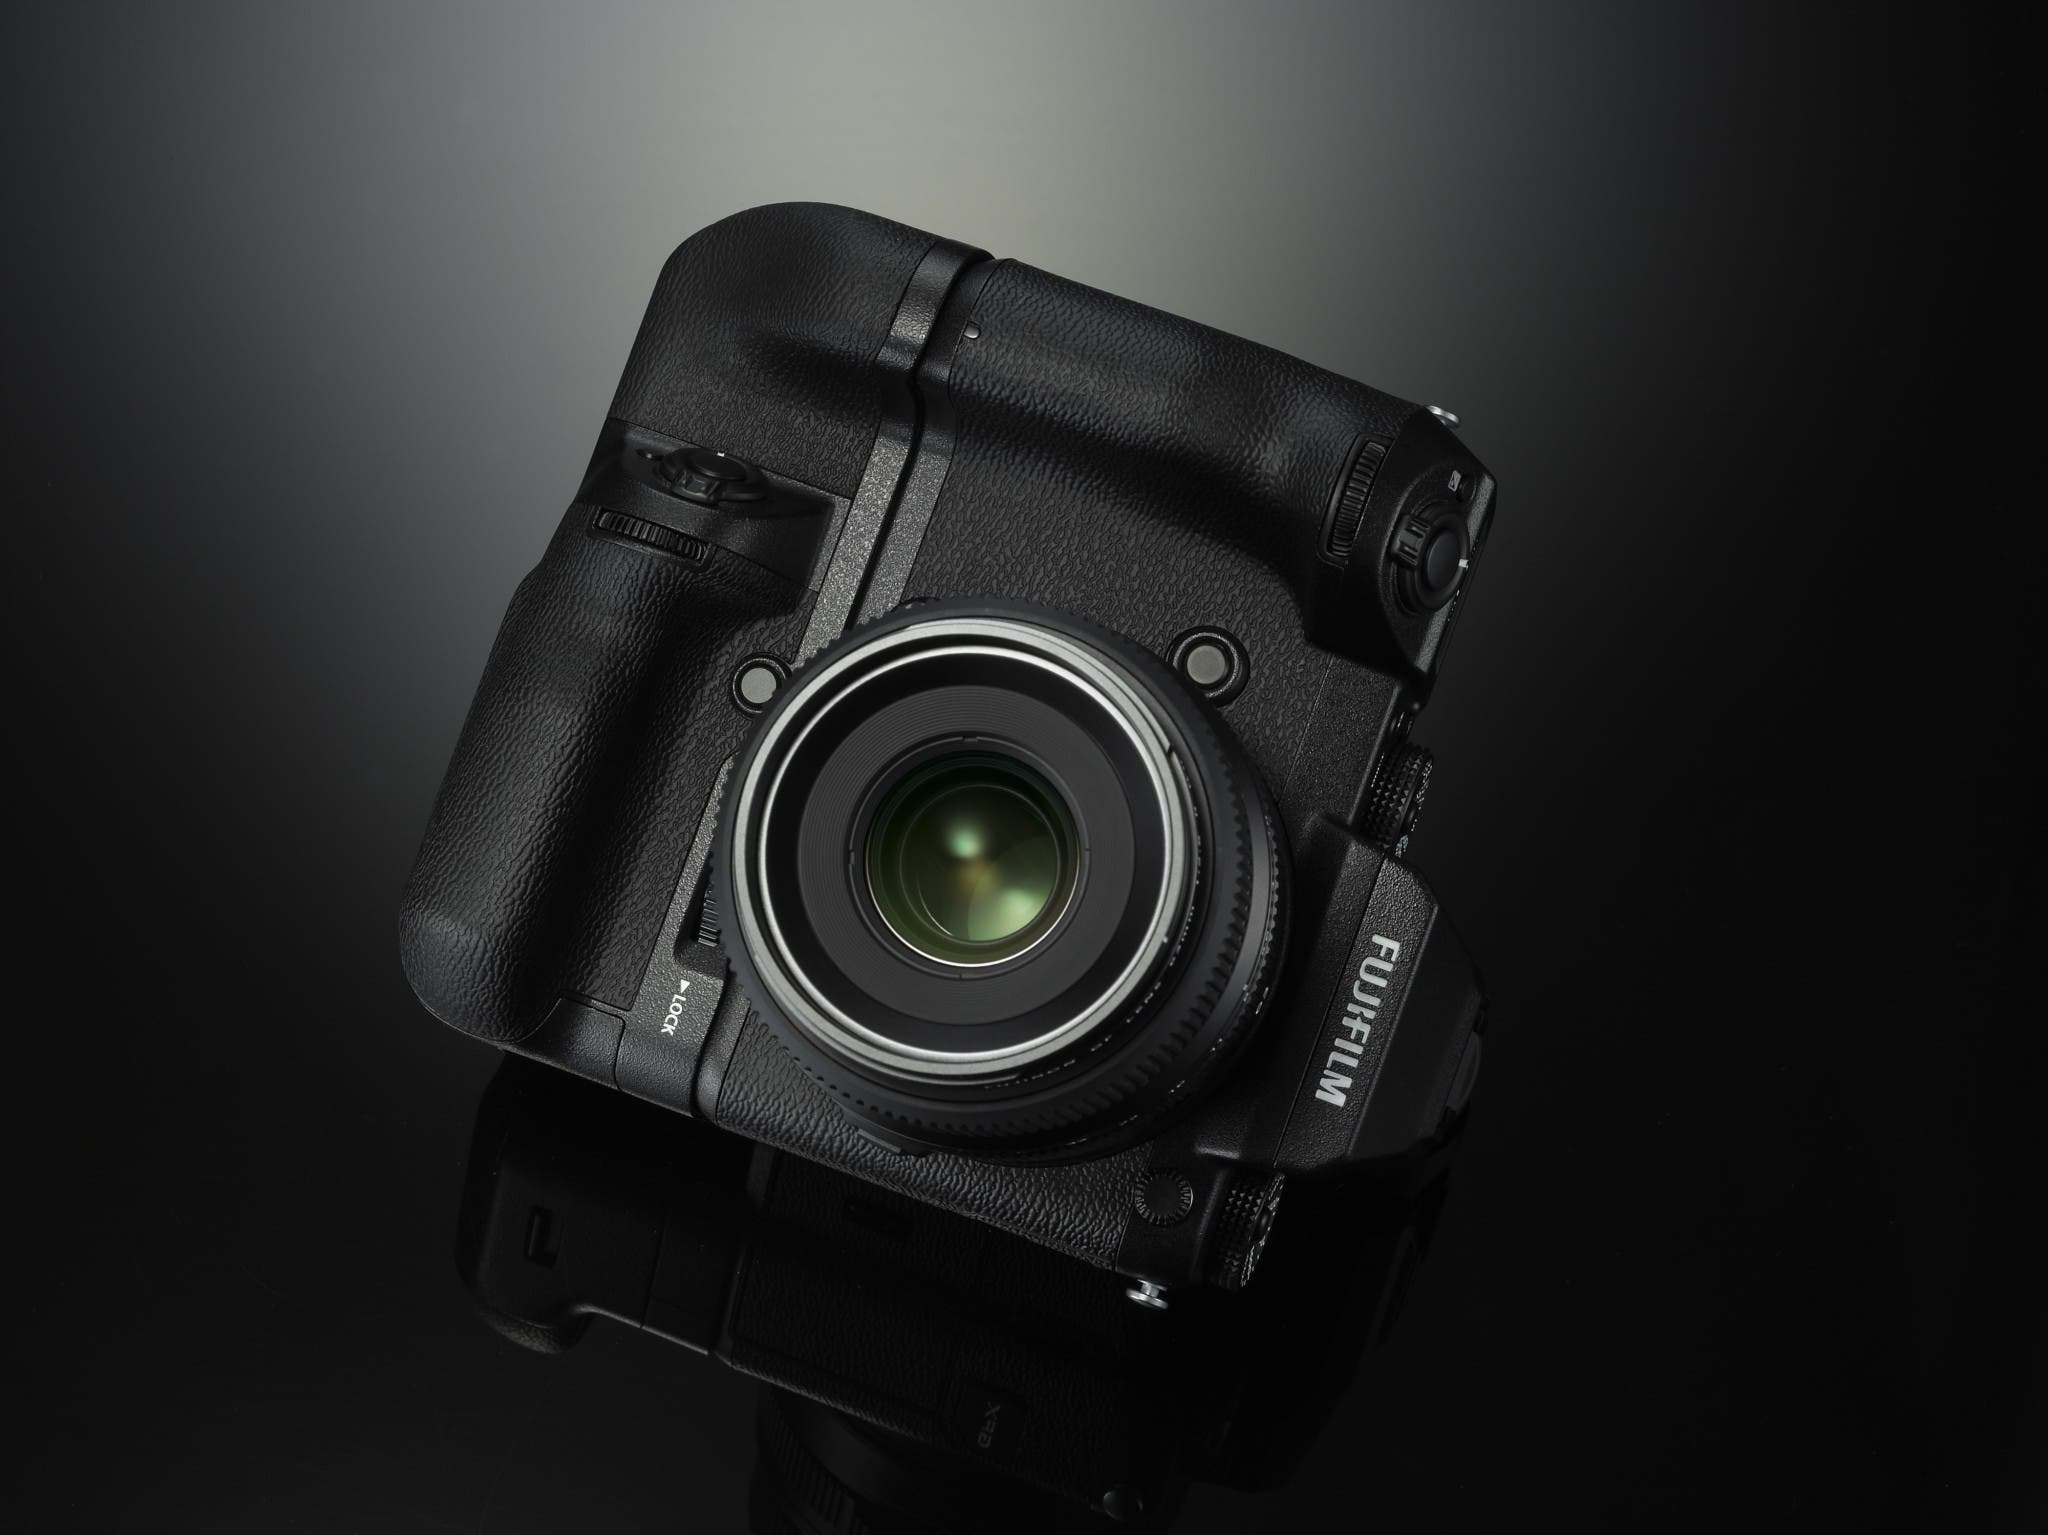 Fujifilm's New GFX Video Series Gives A Glimpse Into Their Vision For The Camera